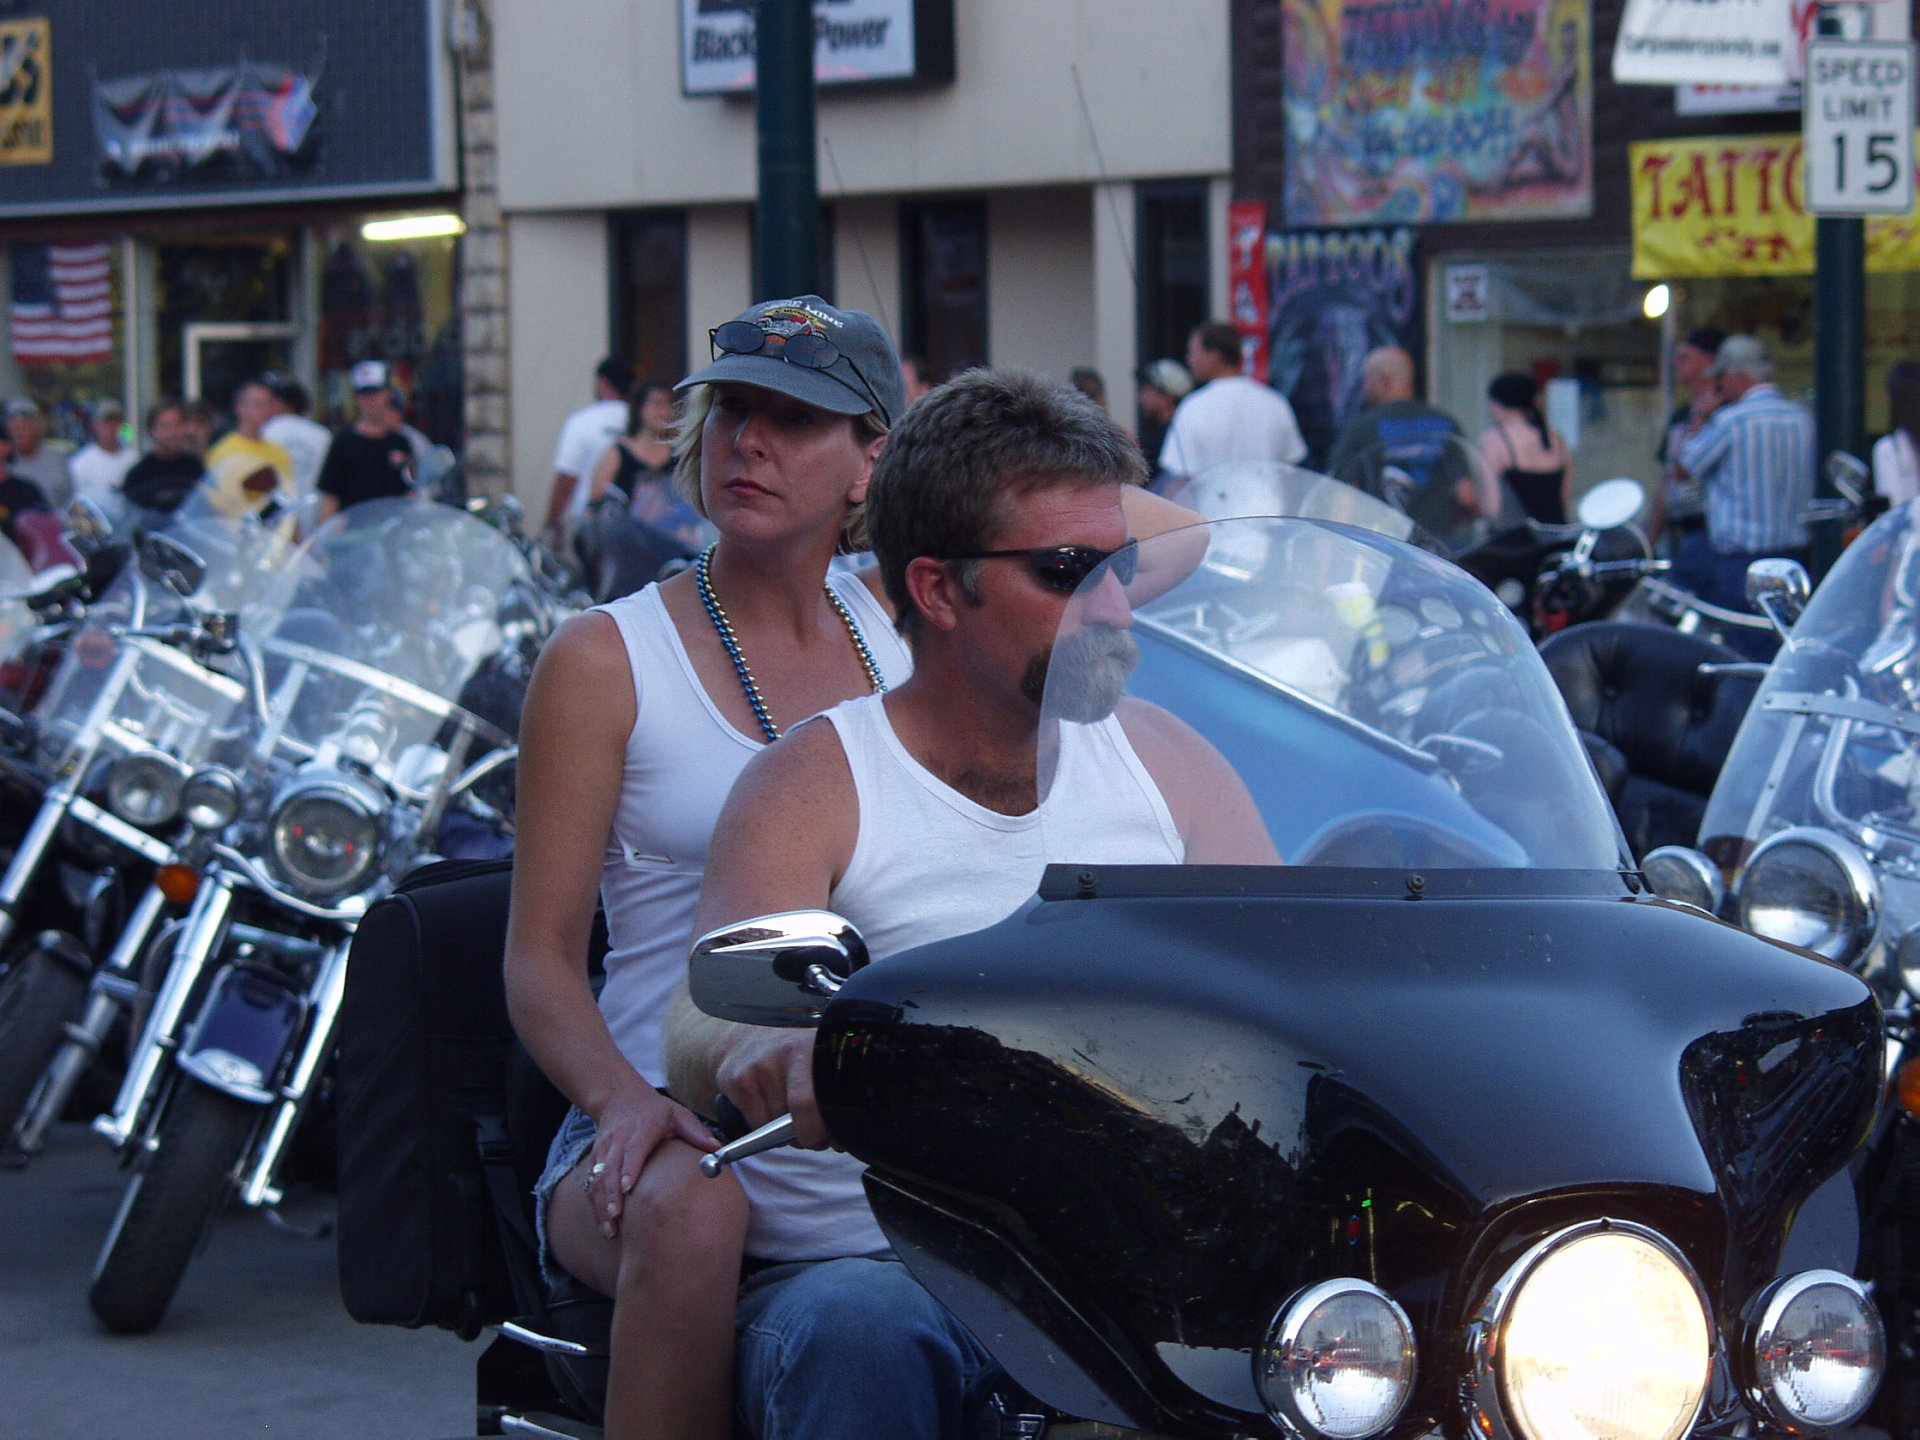 bikers in white t'